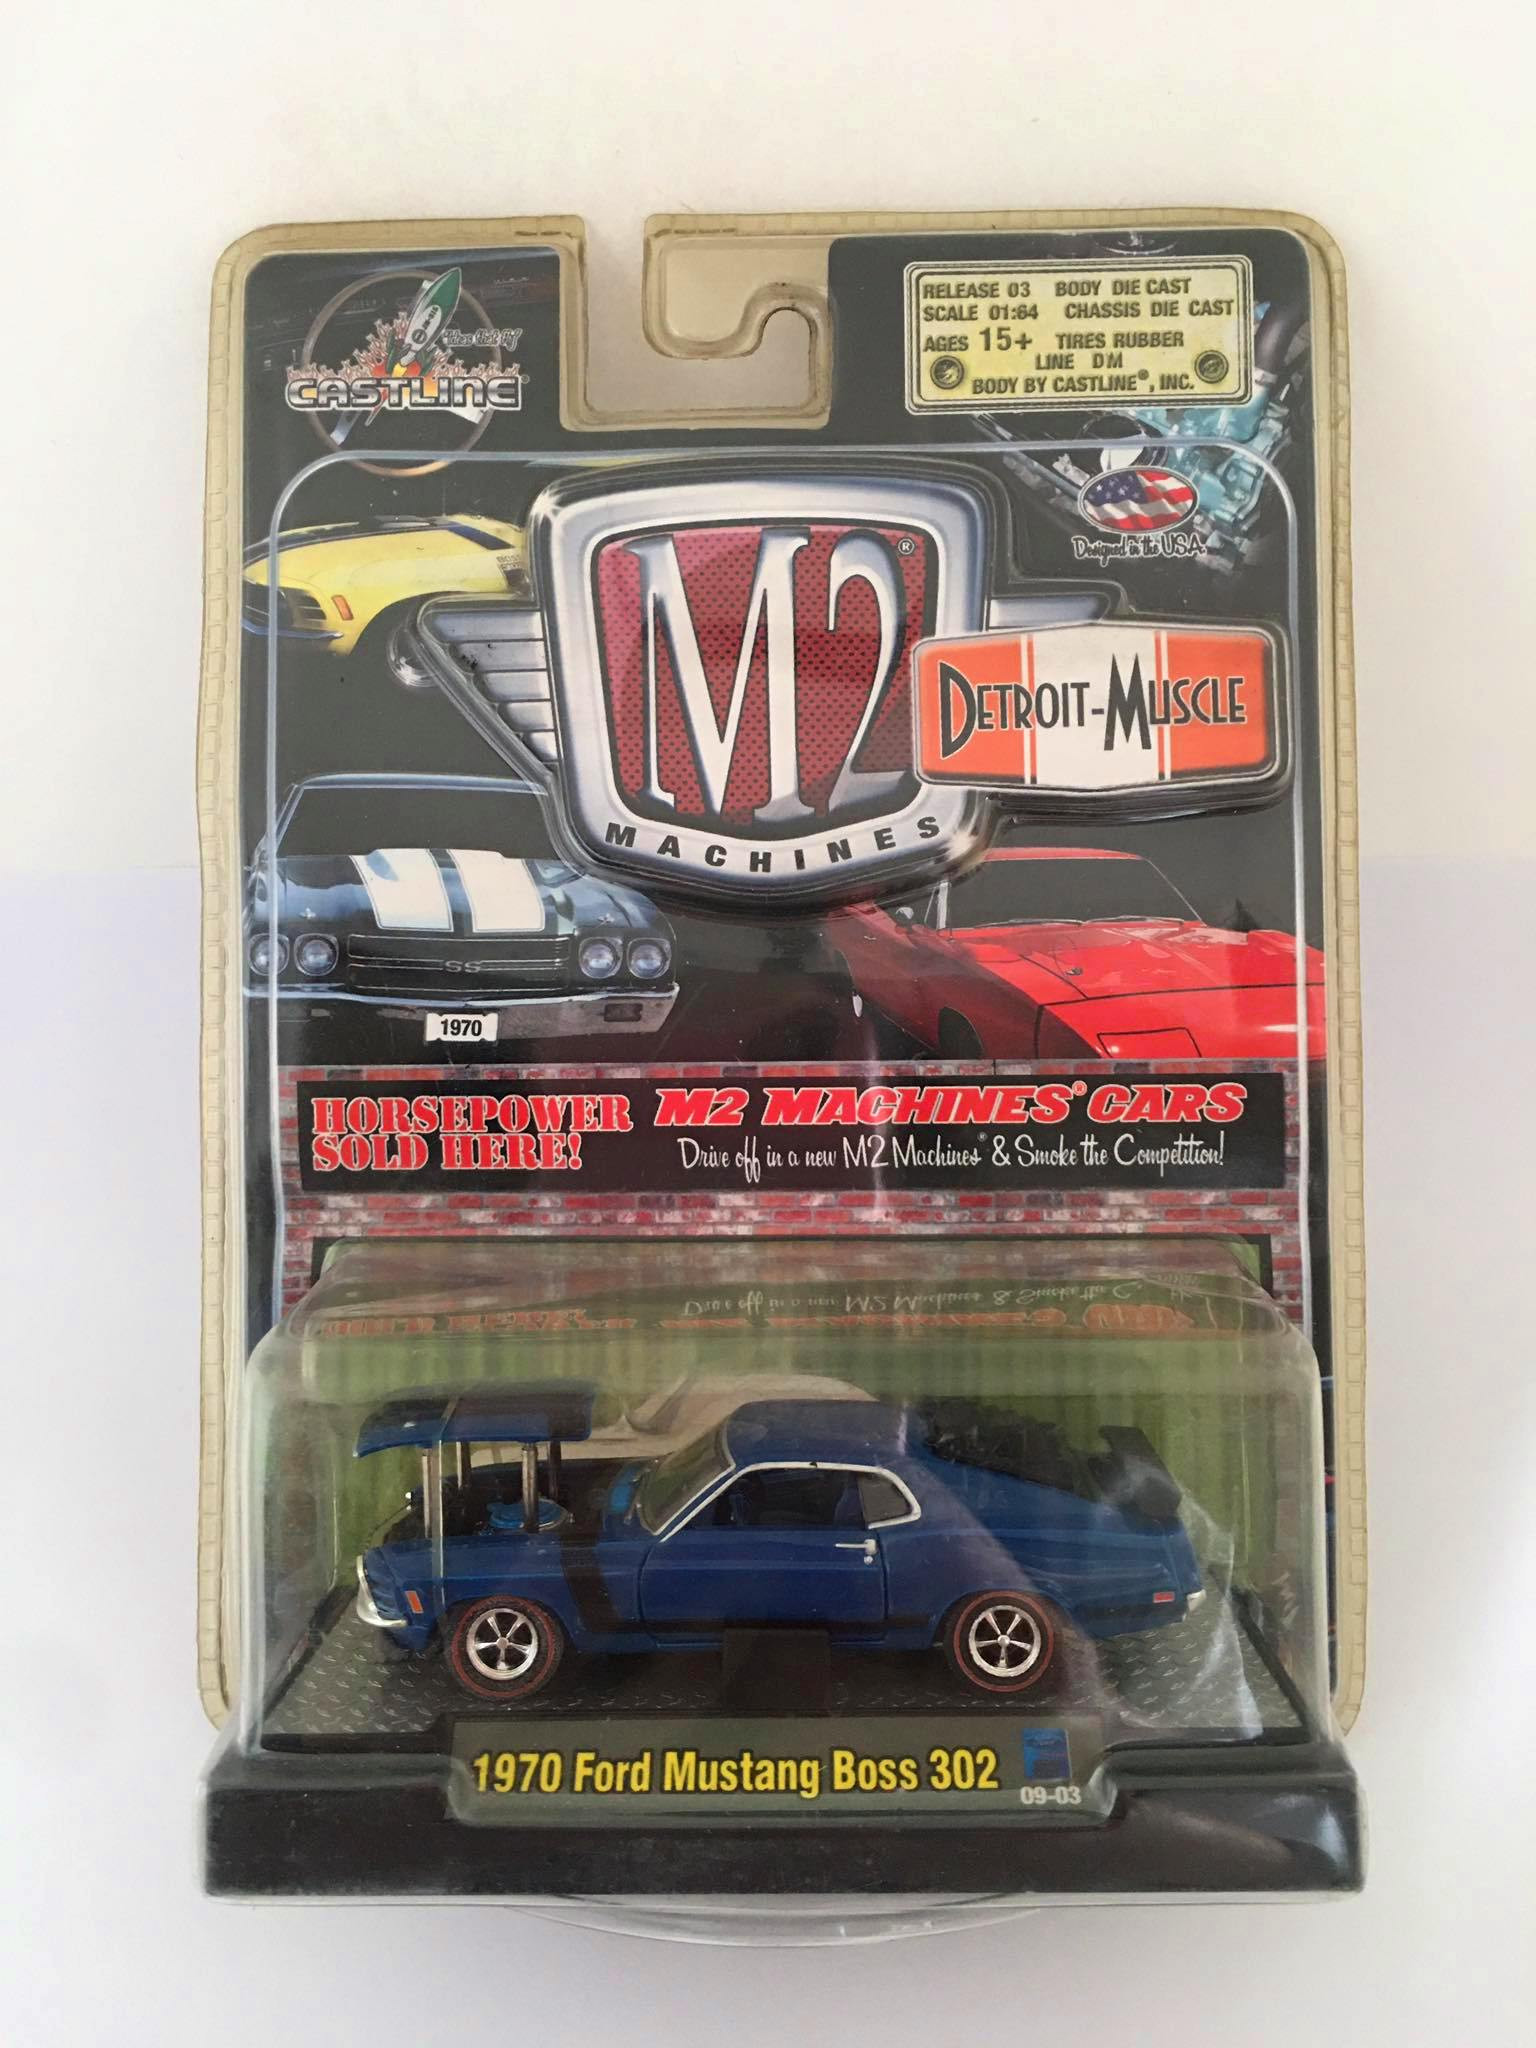 M2 Machines - 1970 Ford Mustang Boss 302 Azul - Detroit-Muscle